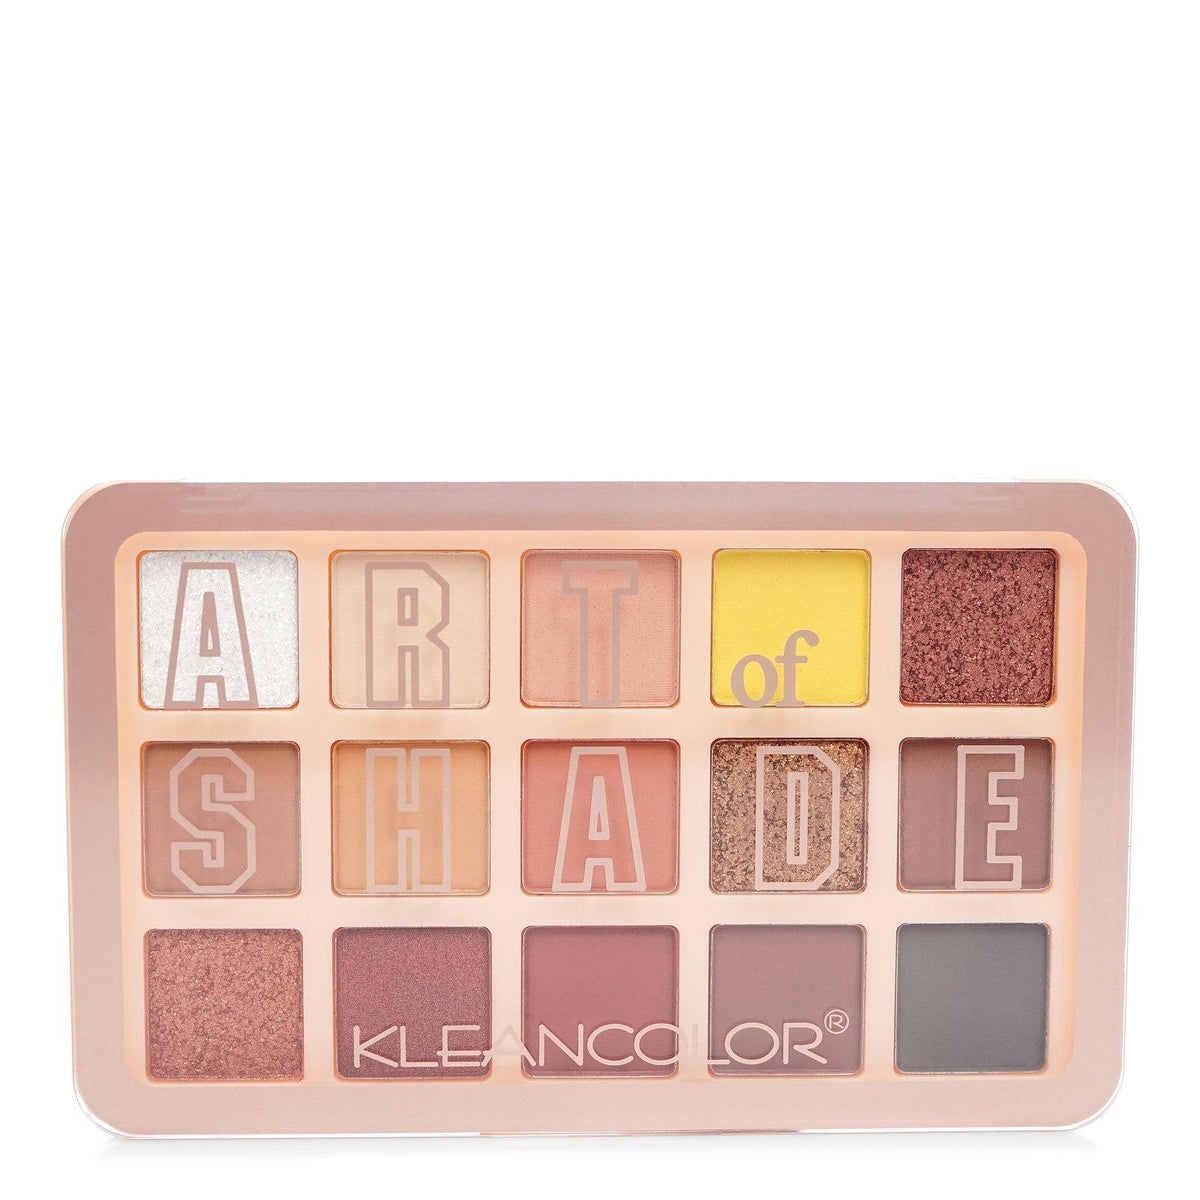 KLEANCOLOR Art of Shade Eyeshadow Palette, 2 Palette Assorted